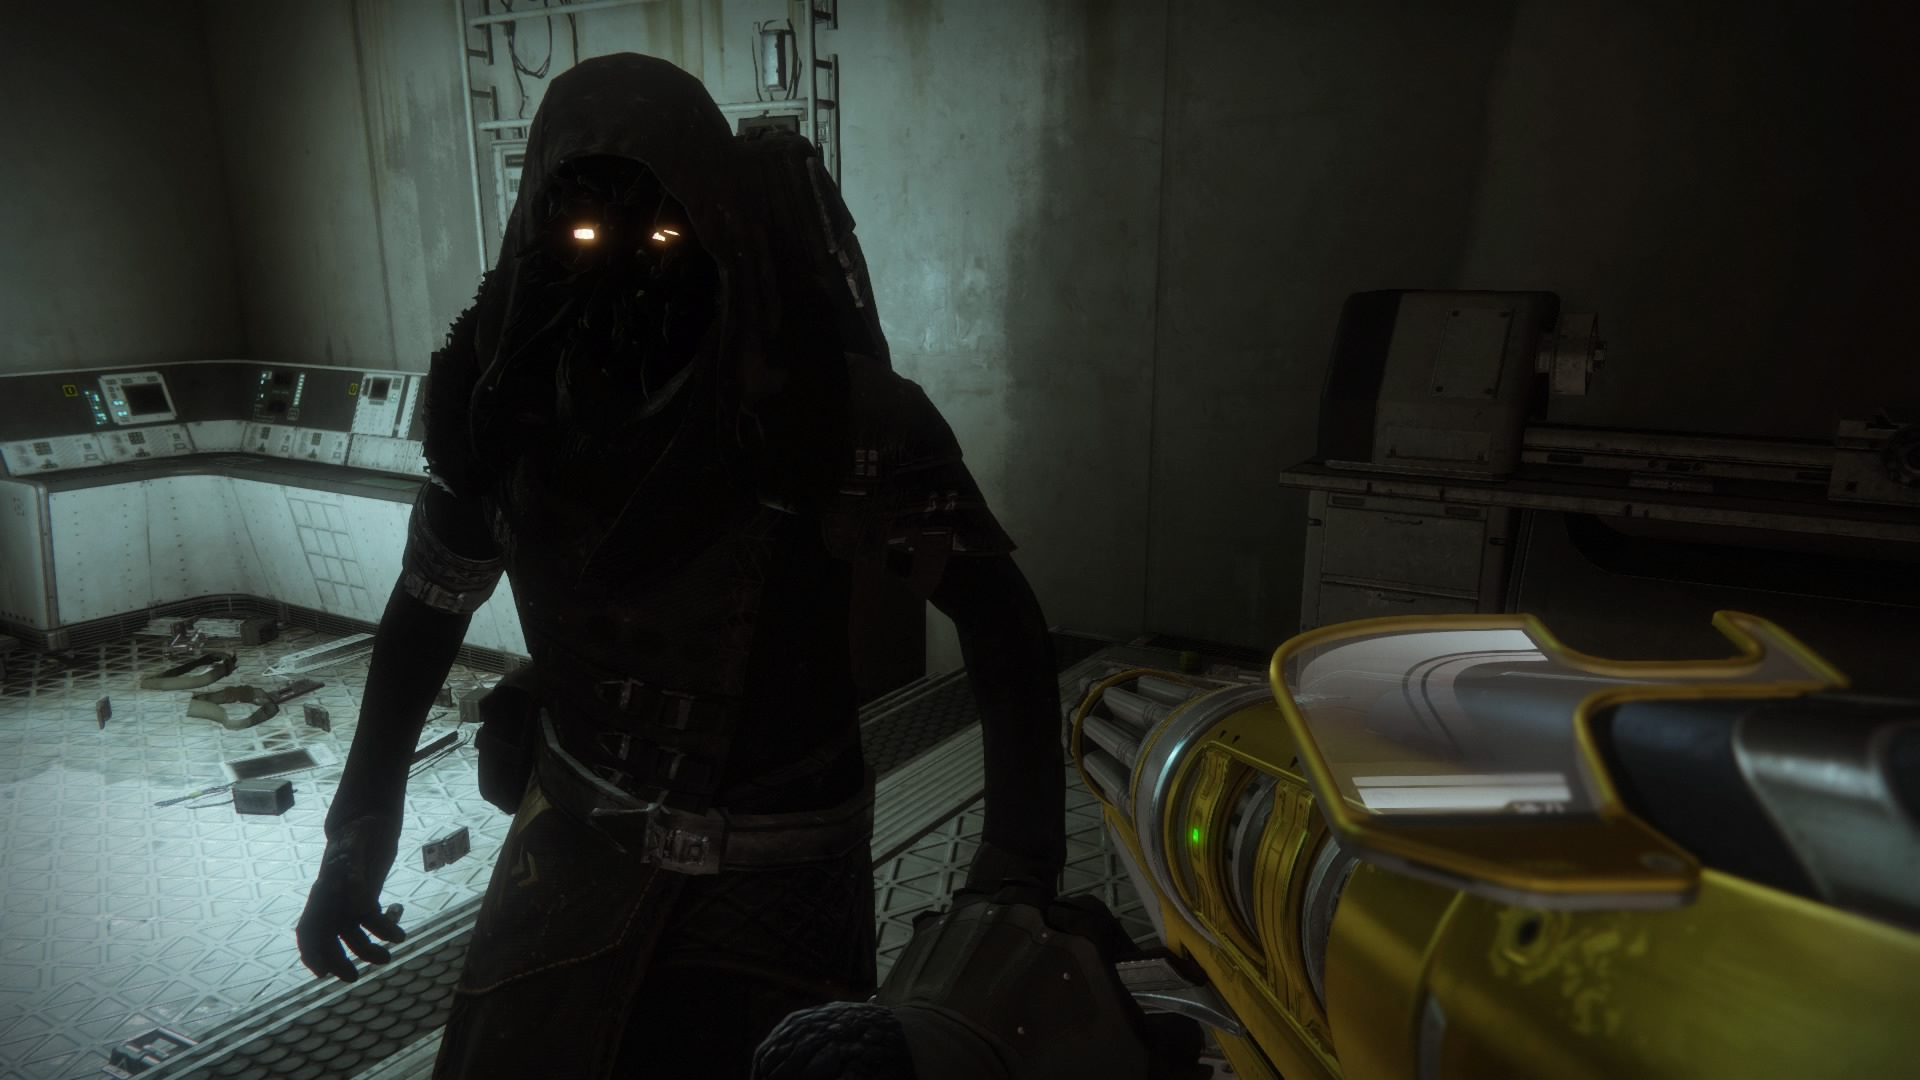 Xur Xur Is Back Today In Destiny 2 With Brand New Types Of Items